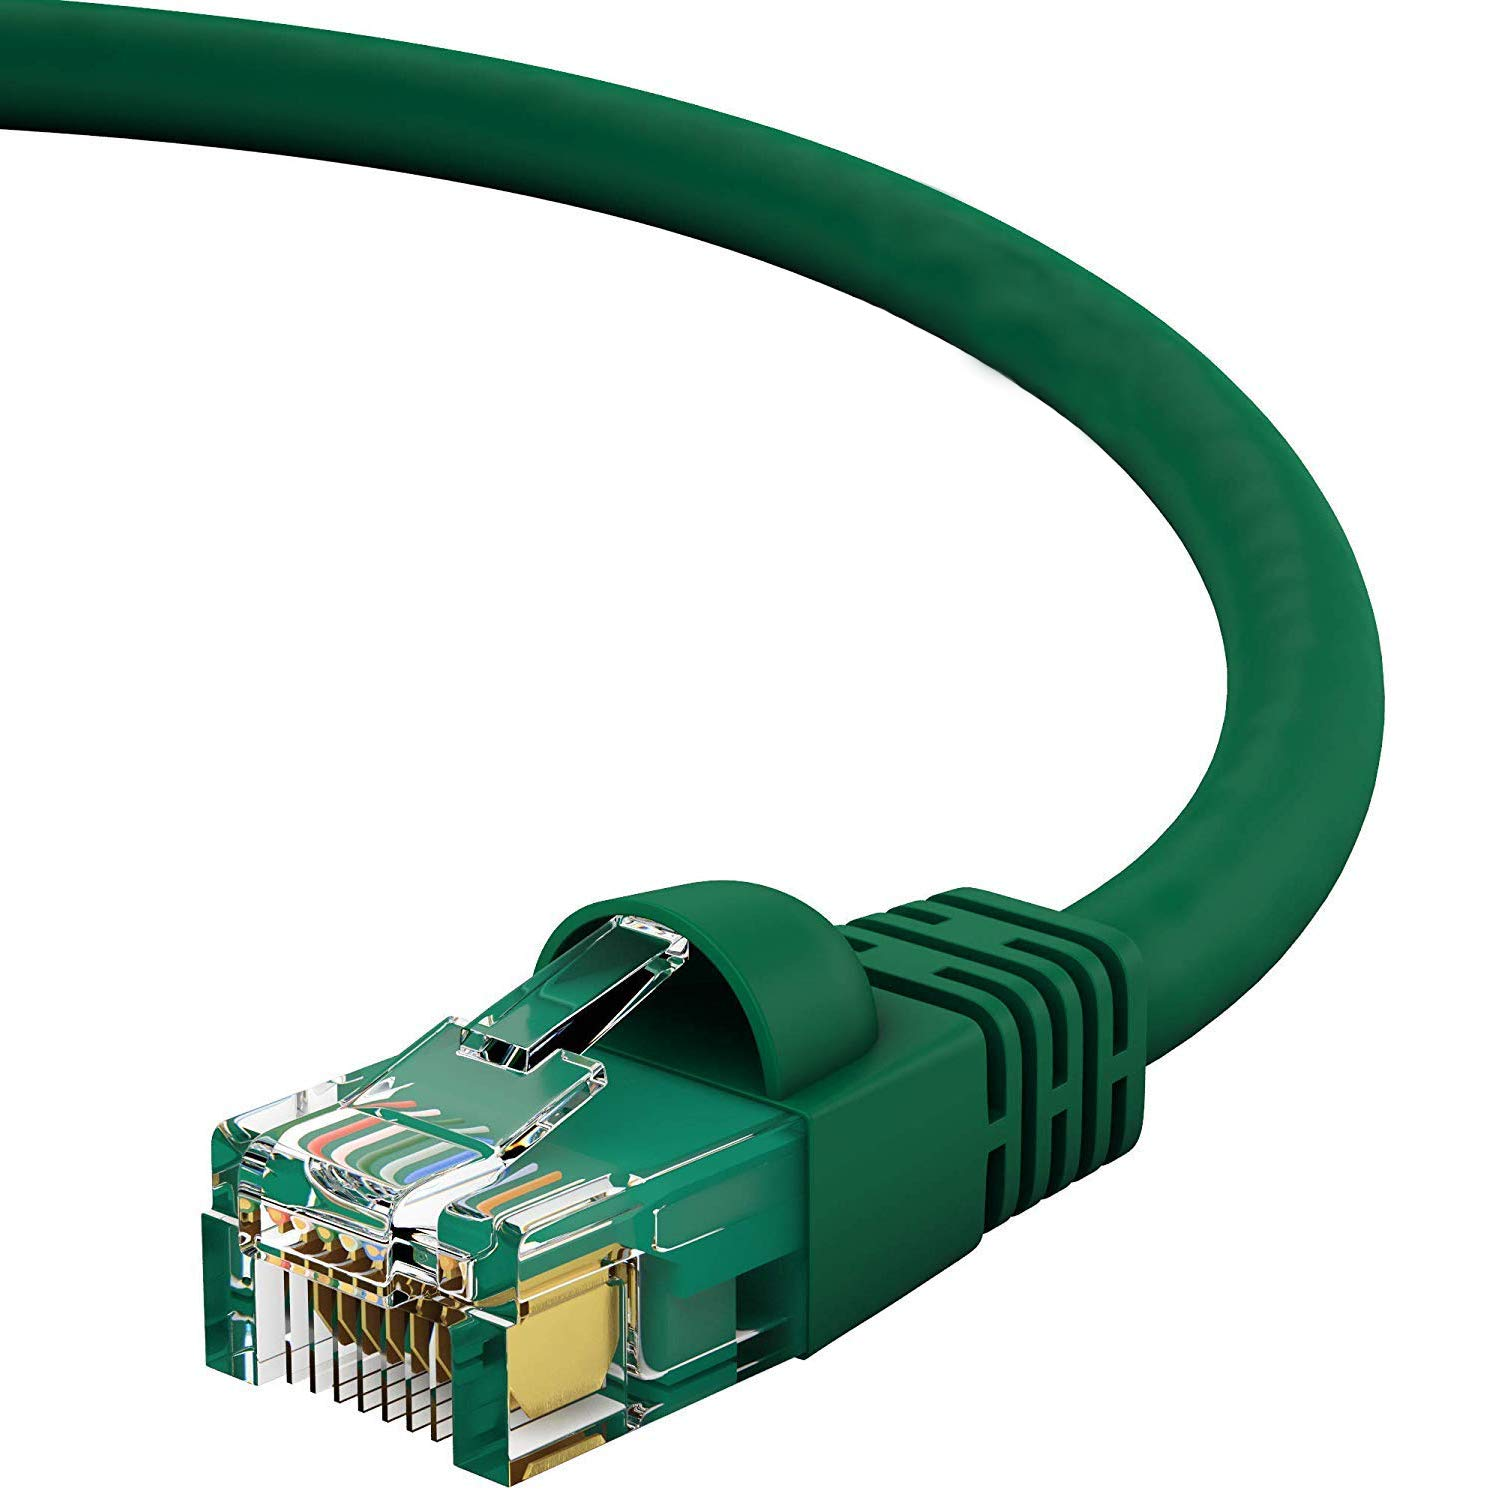 100-Pack - 4 Feet Red 1Gigabit//Sec High Speed LAN Internet//Patch Cable GOWOS Cat5e Ethernet Cable 350MHz 24AWG Network Cable with Gold Plated RJ45 Non-Booted Connector